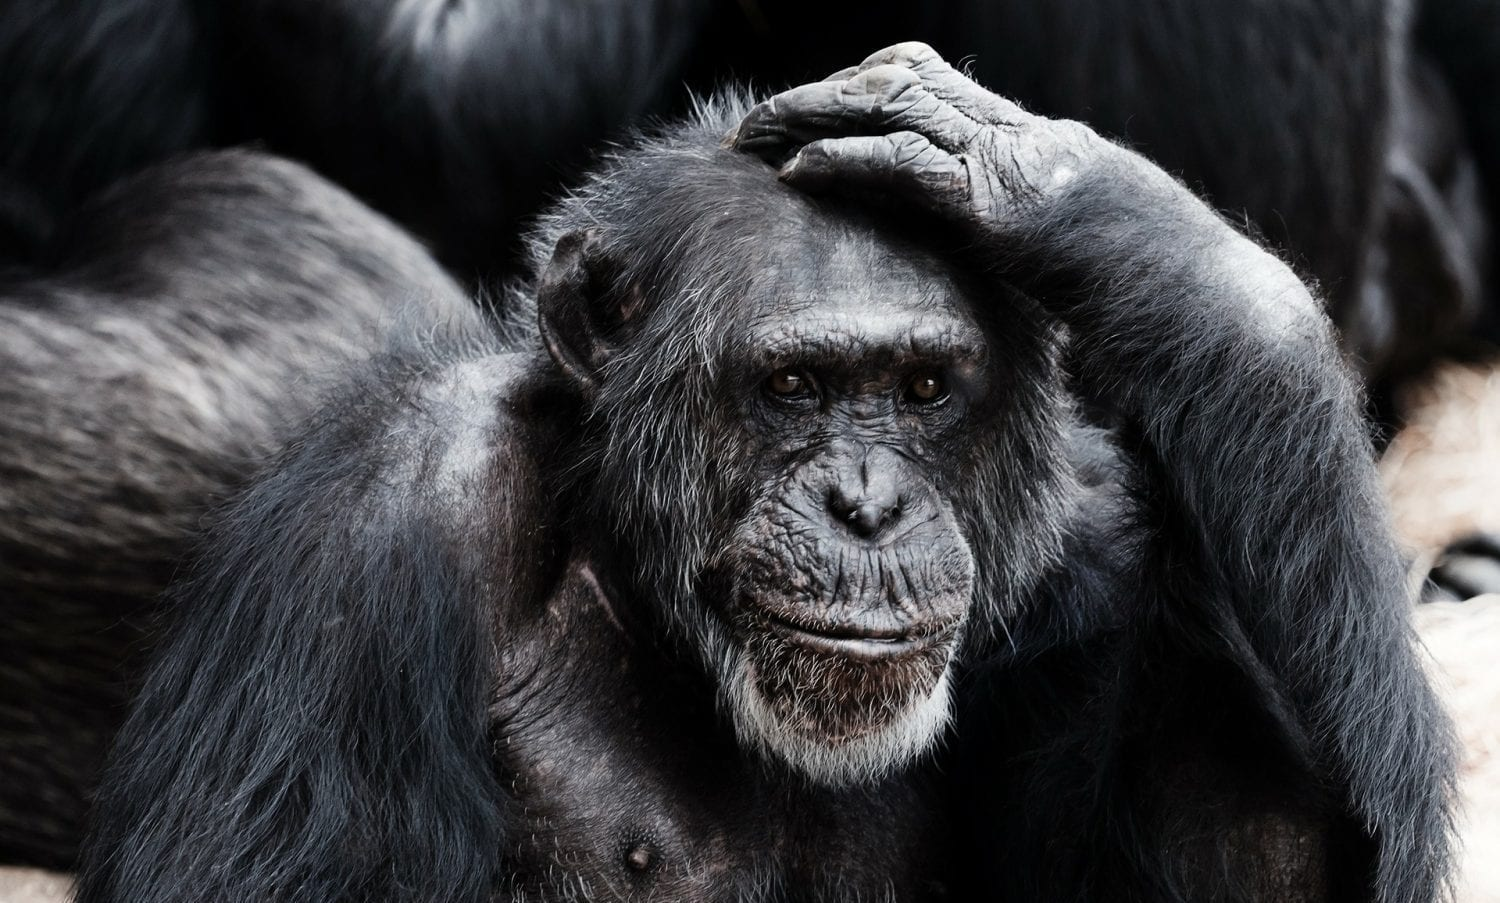 I do not think too deep. Ape scratching his head